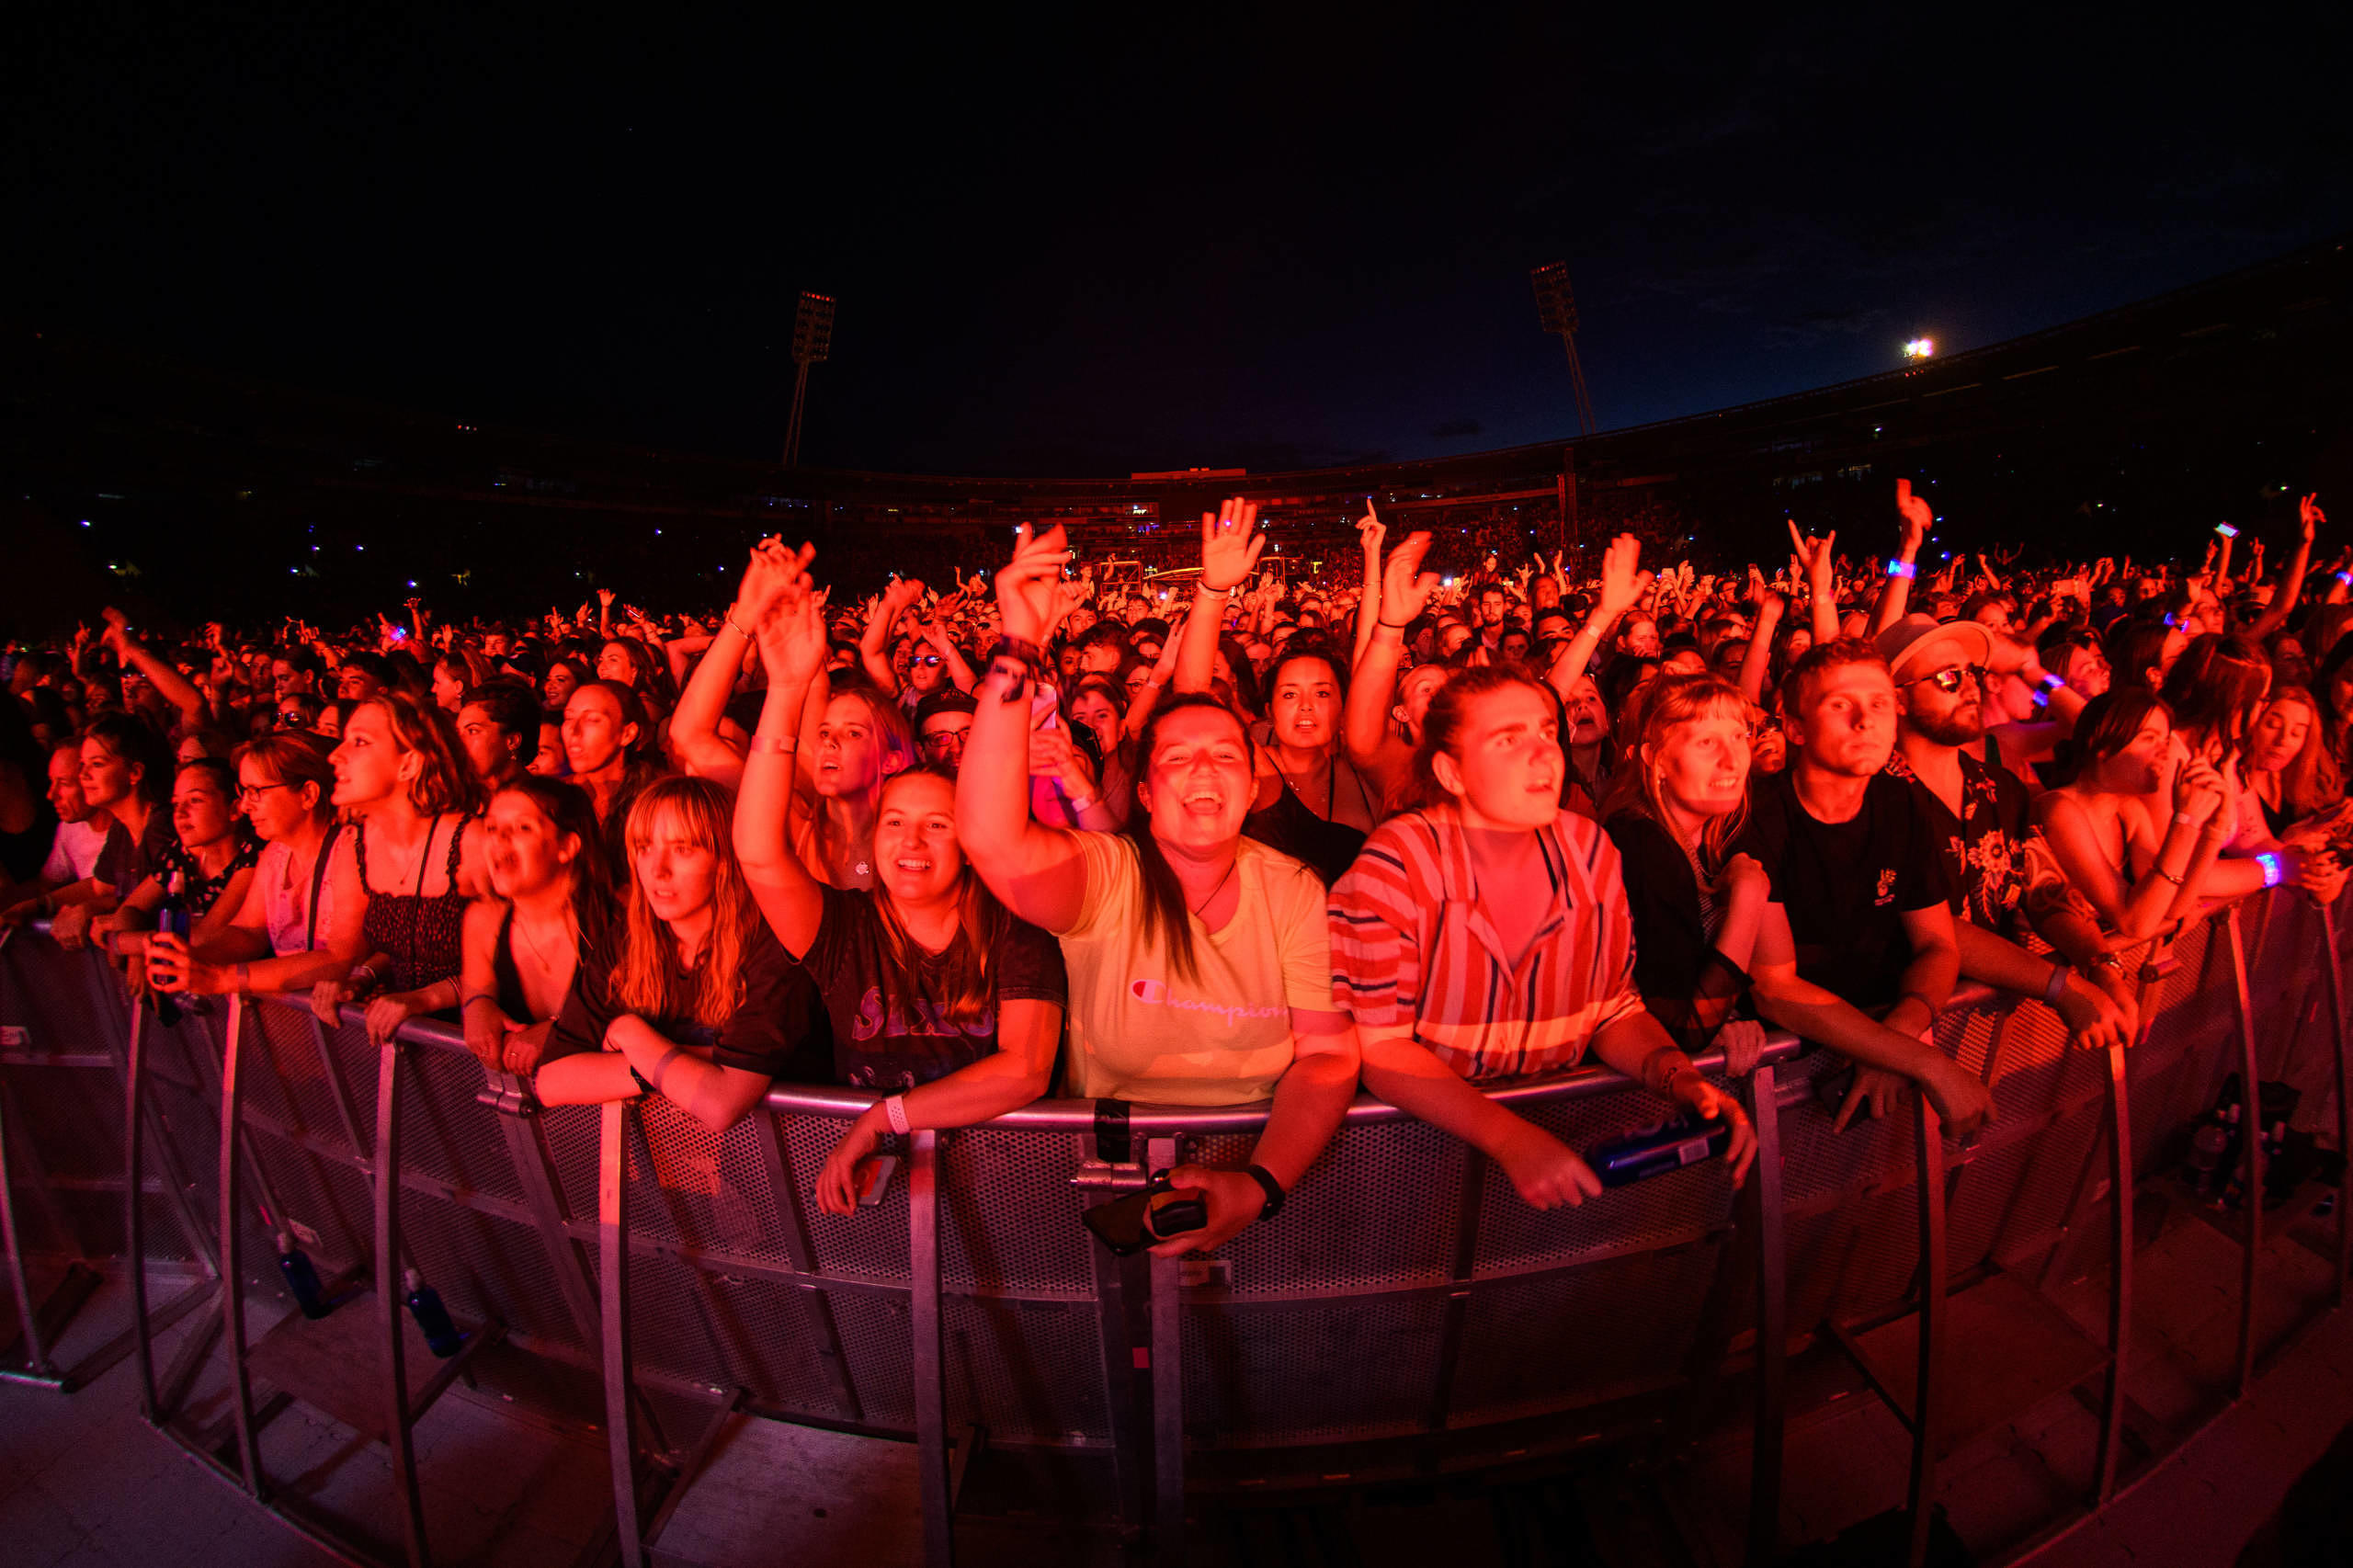 30,000 fans at the Six60 concert in New Zealand